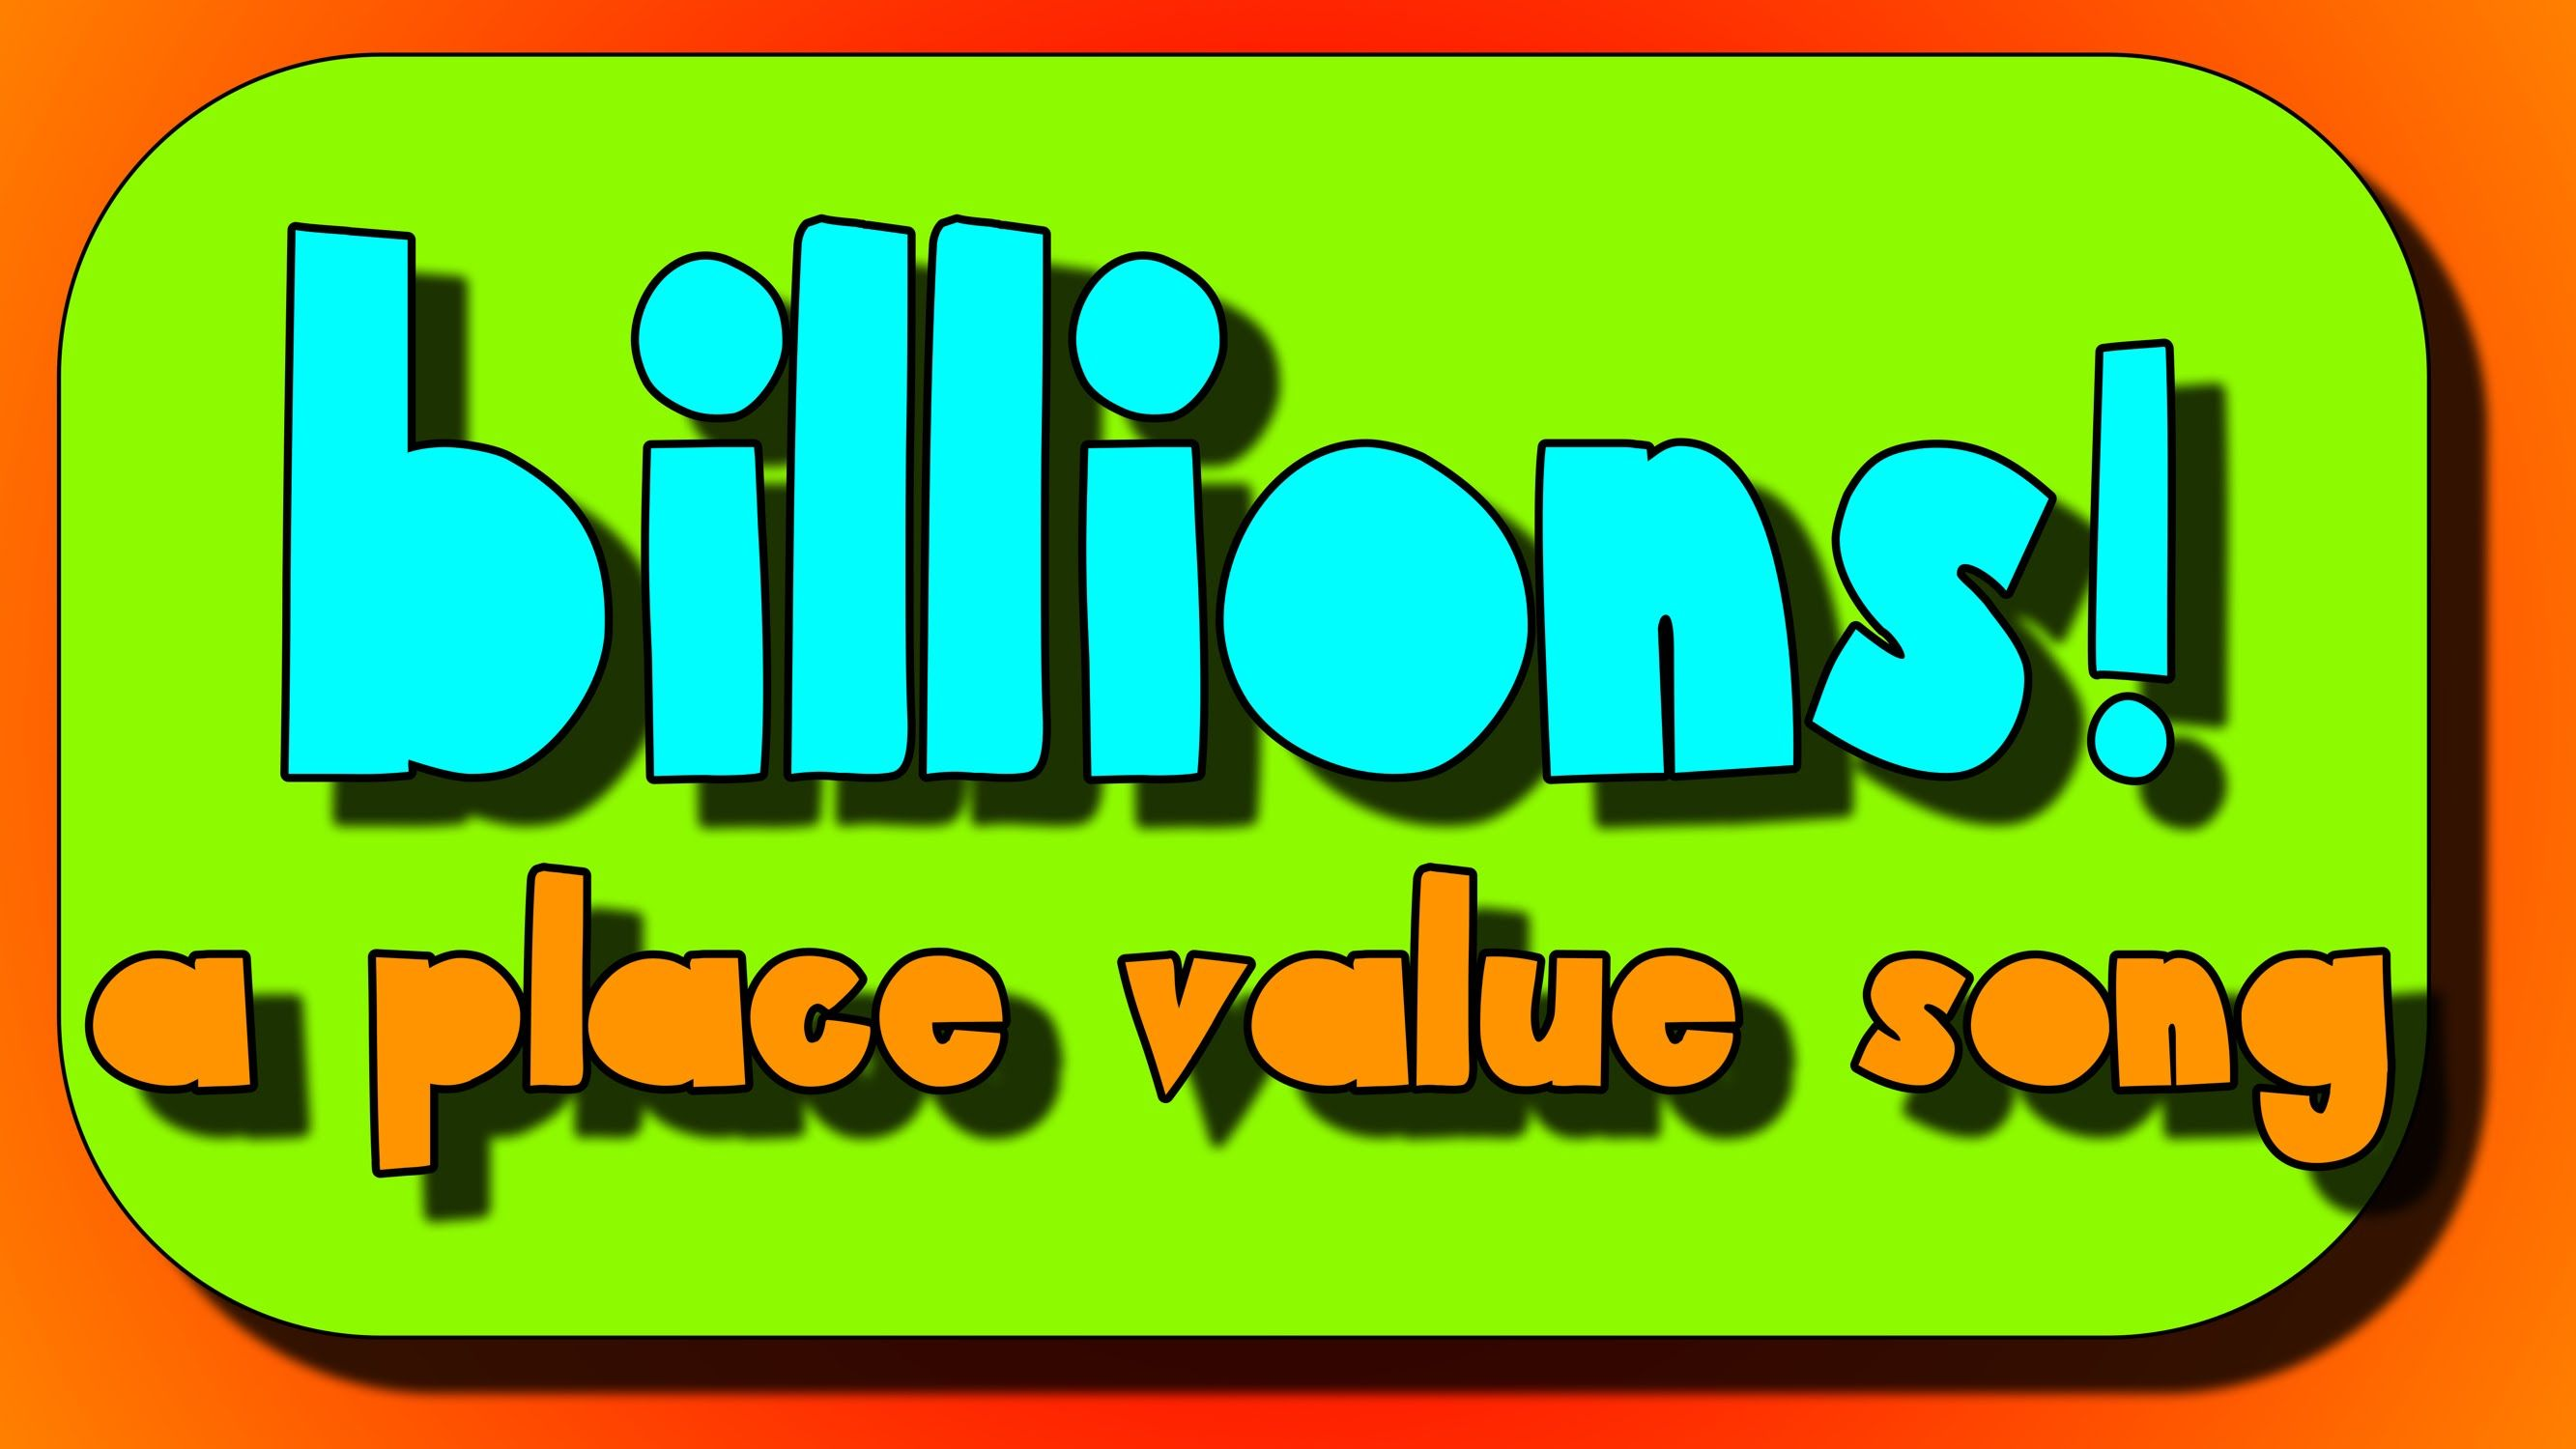 Billions And Millions Place Value Song With Images